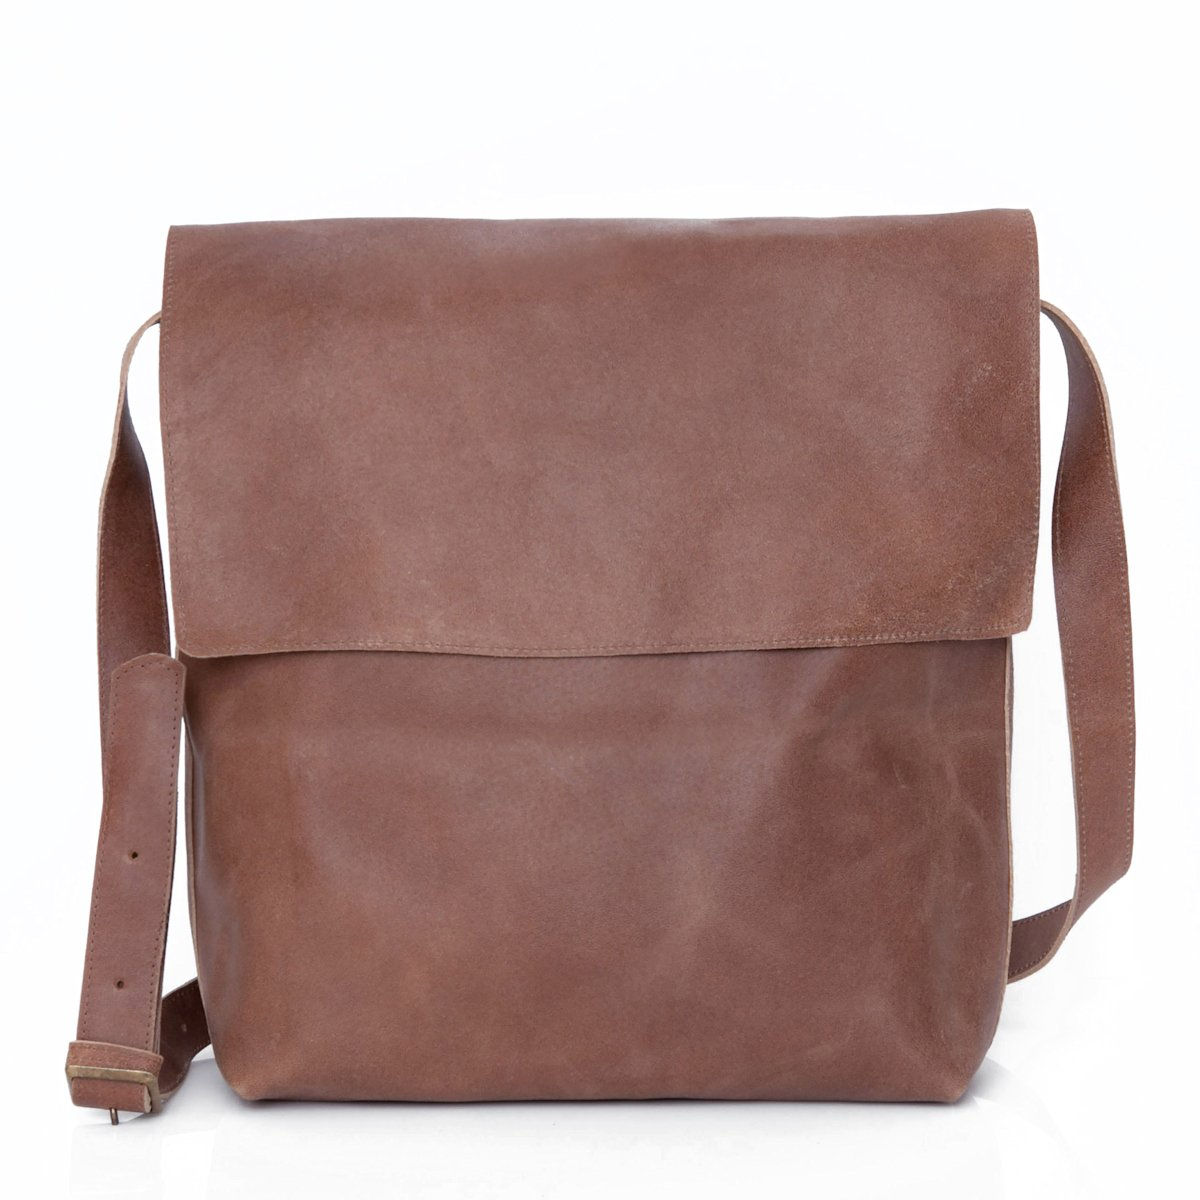 f2d27dec72 Mayko Bags Women s Cross-Body Bag Brown cinnamon  Amazon.co.uk  Clothing